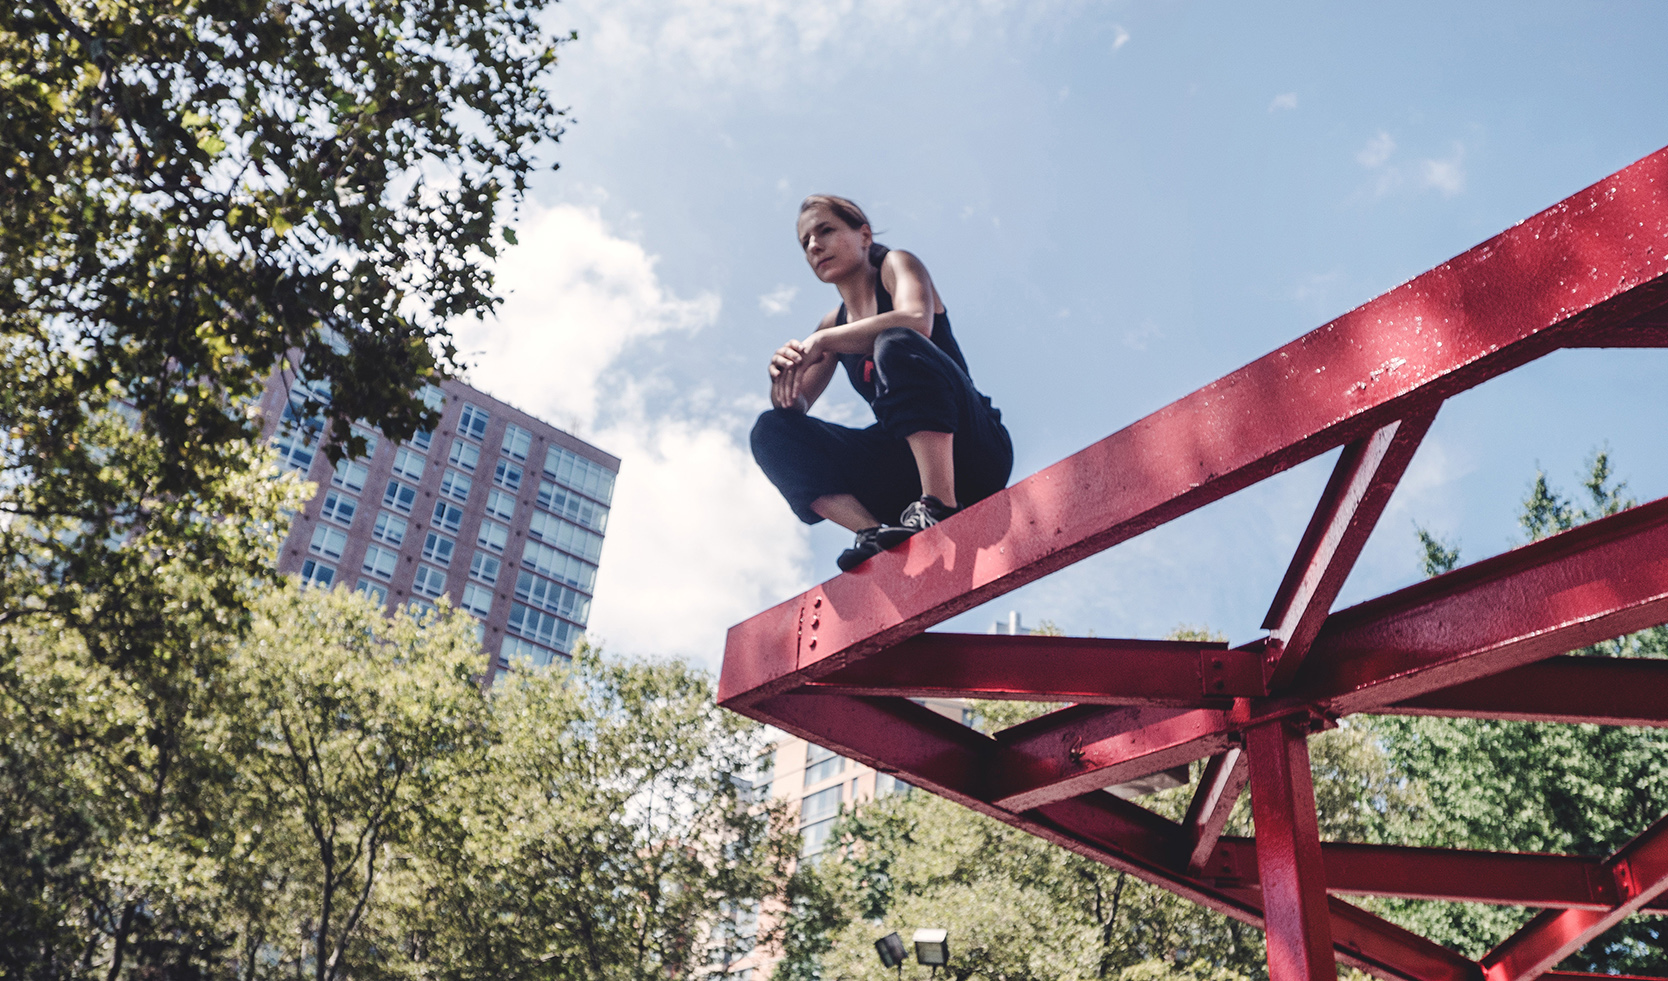 Grace Parkour Photoshoot - credit: Steve Zavitz